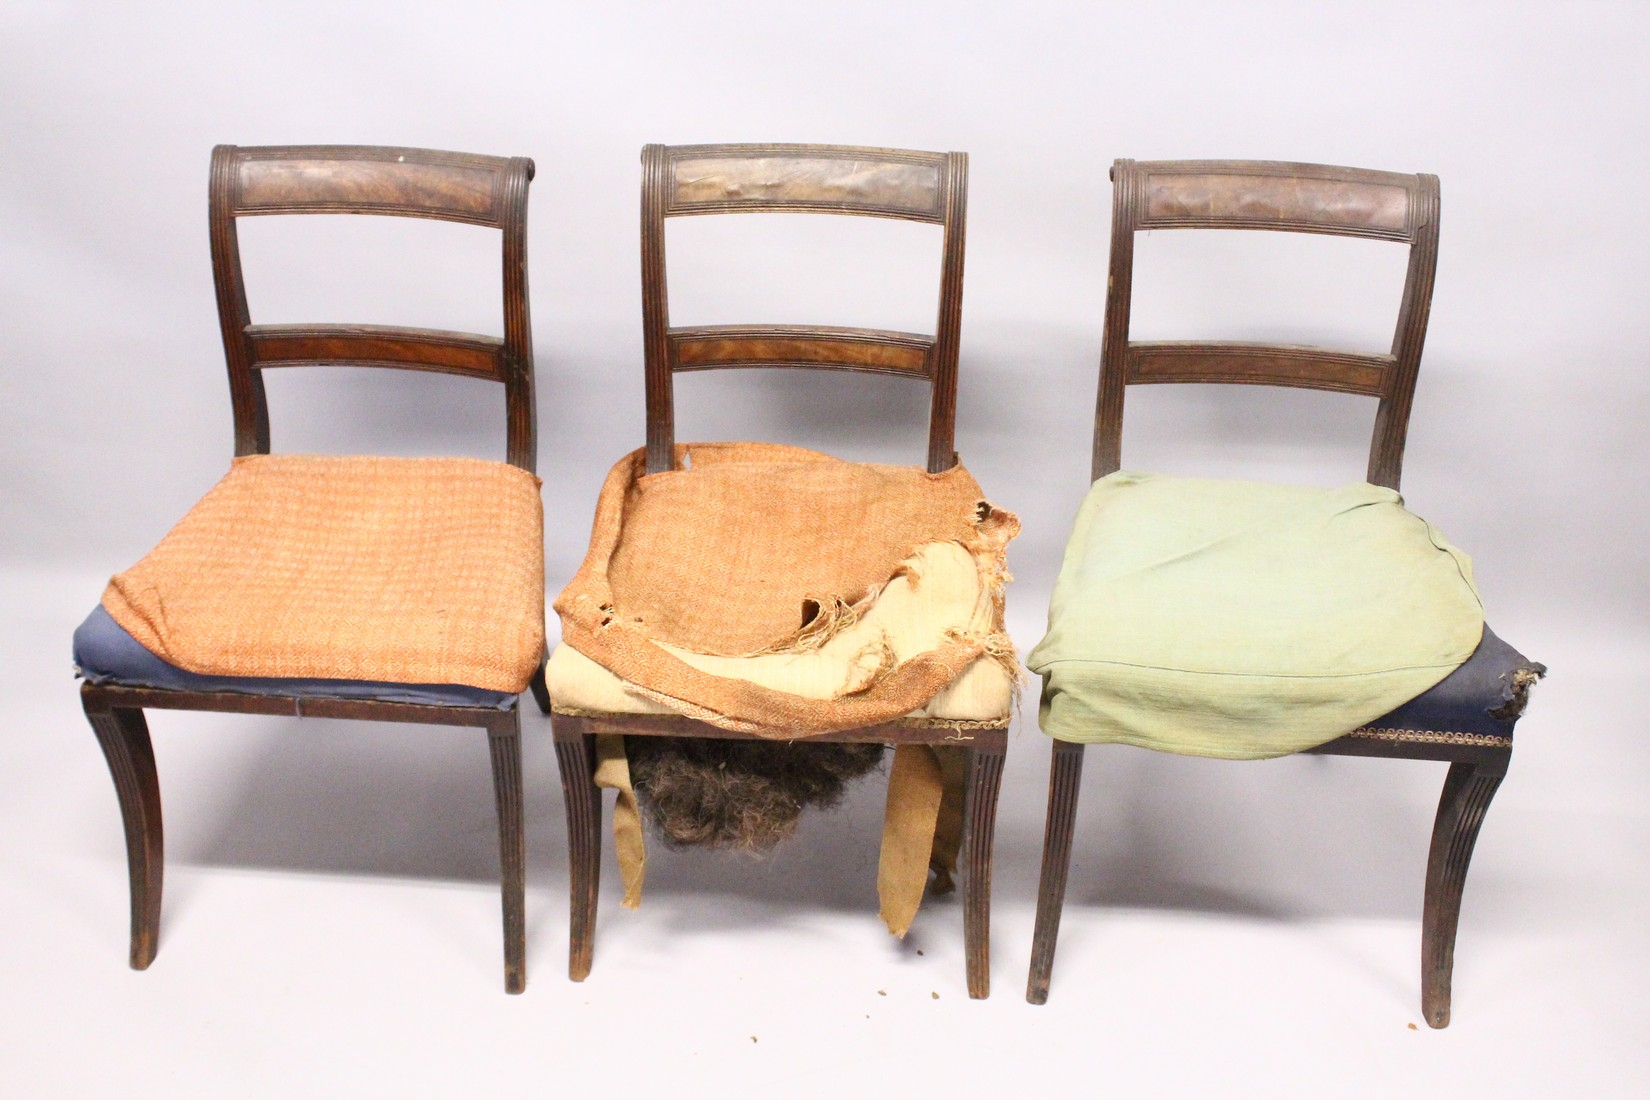 A PAIR OF MAHOGANY, SABRE LEG ARM CHAIRS and three matching single chairs. - Image 5 of 5